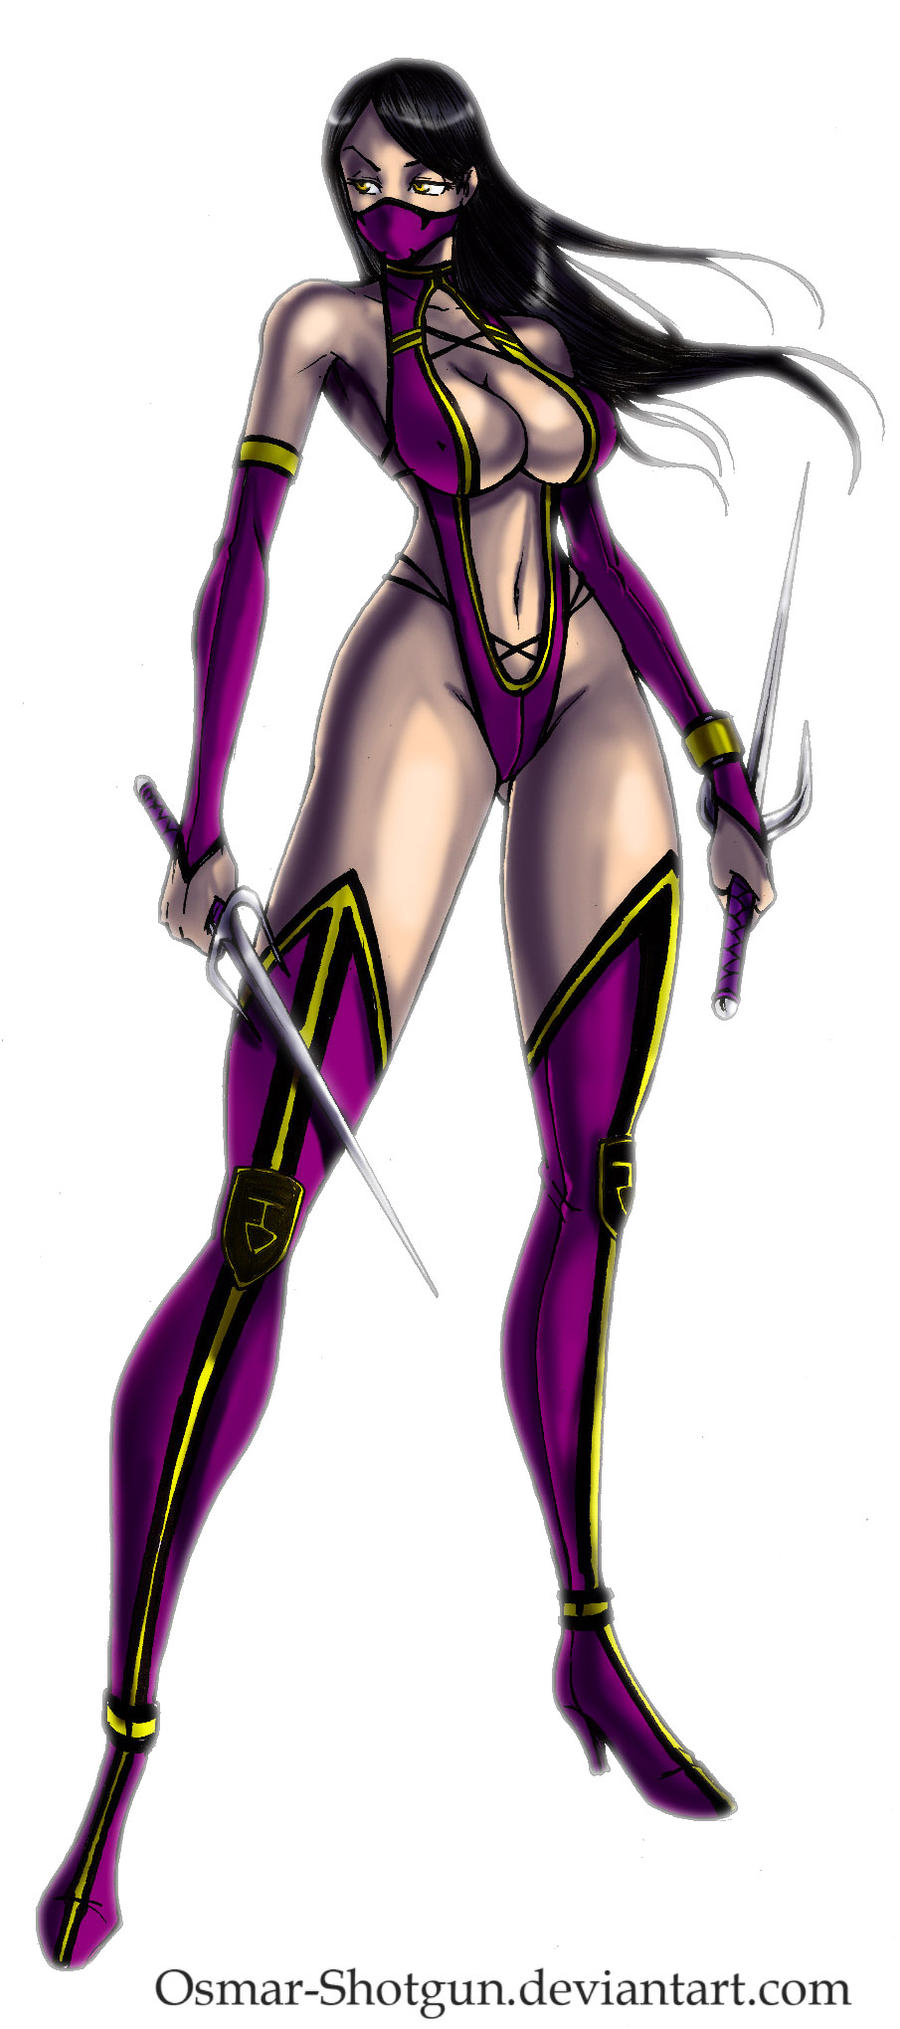 Mileena by Osmar-Shotgun